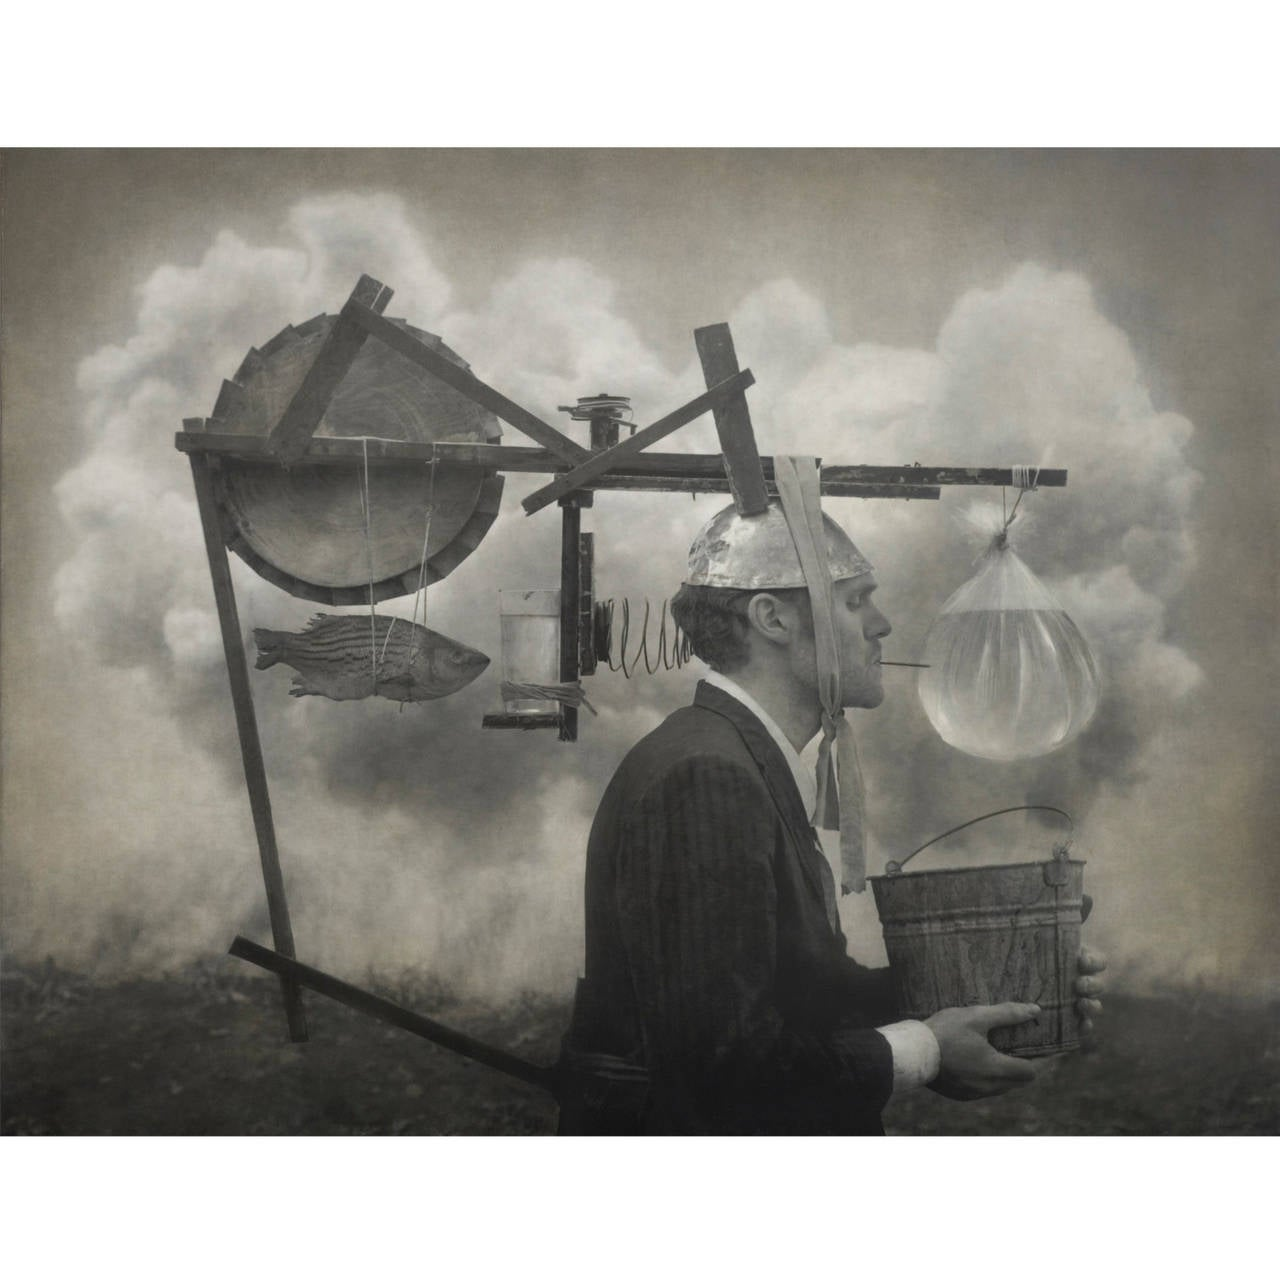 Robert and Shana ParkeHarrison - Cloudburst 1